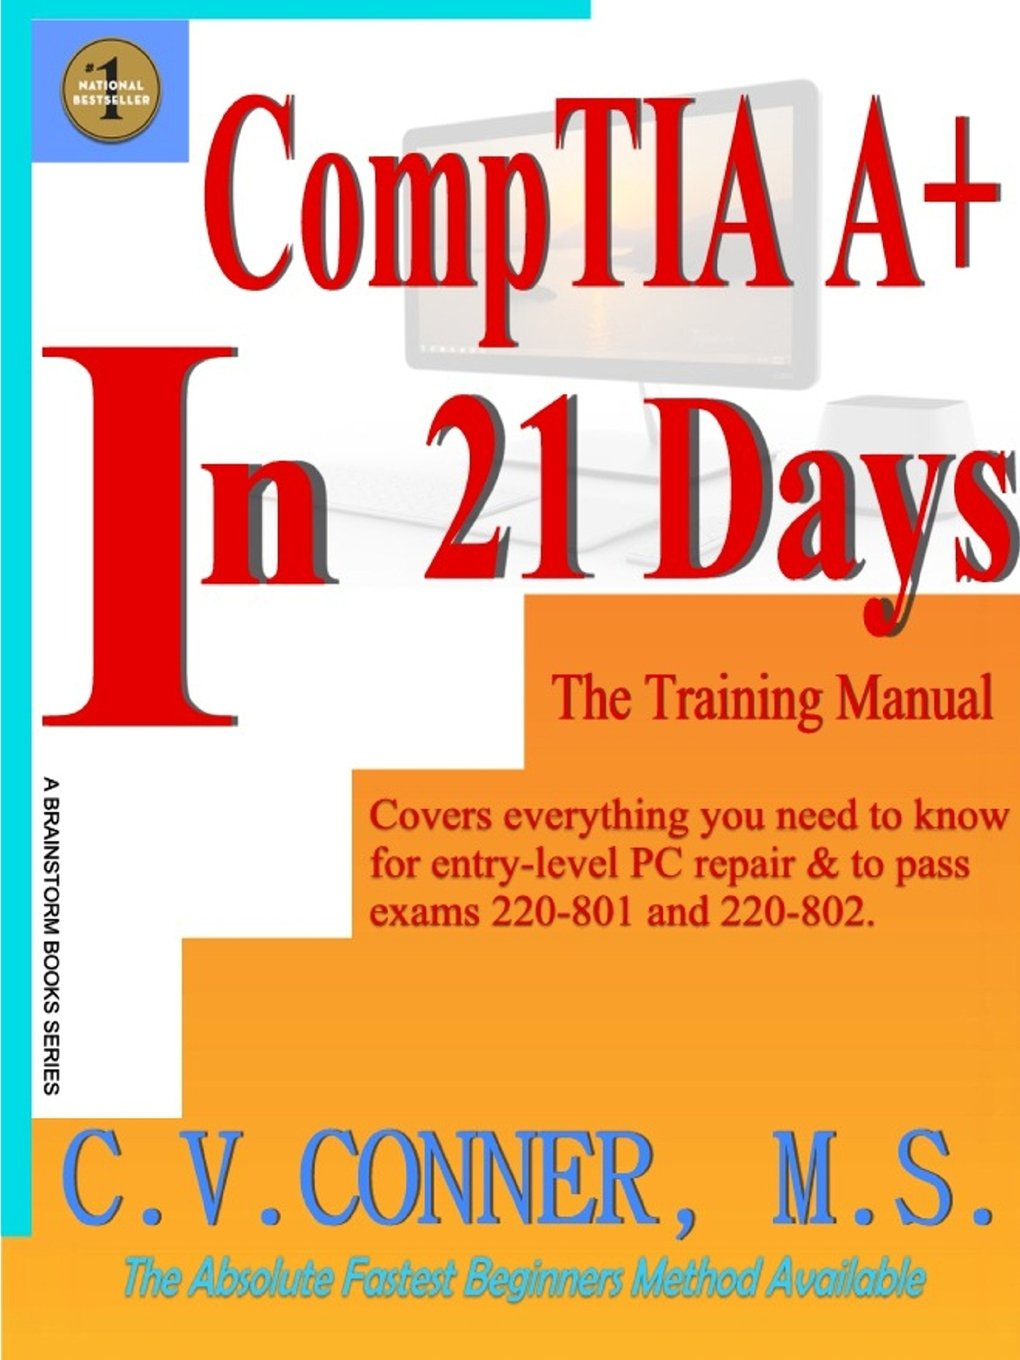 CompTia A+ In 21 Days - Training Manual: C.V. Conner: 9781312254411:  Amazon.com: Books